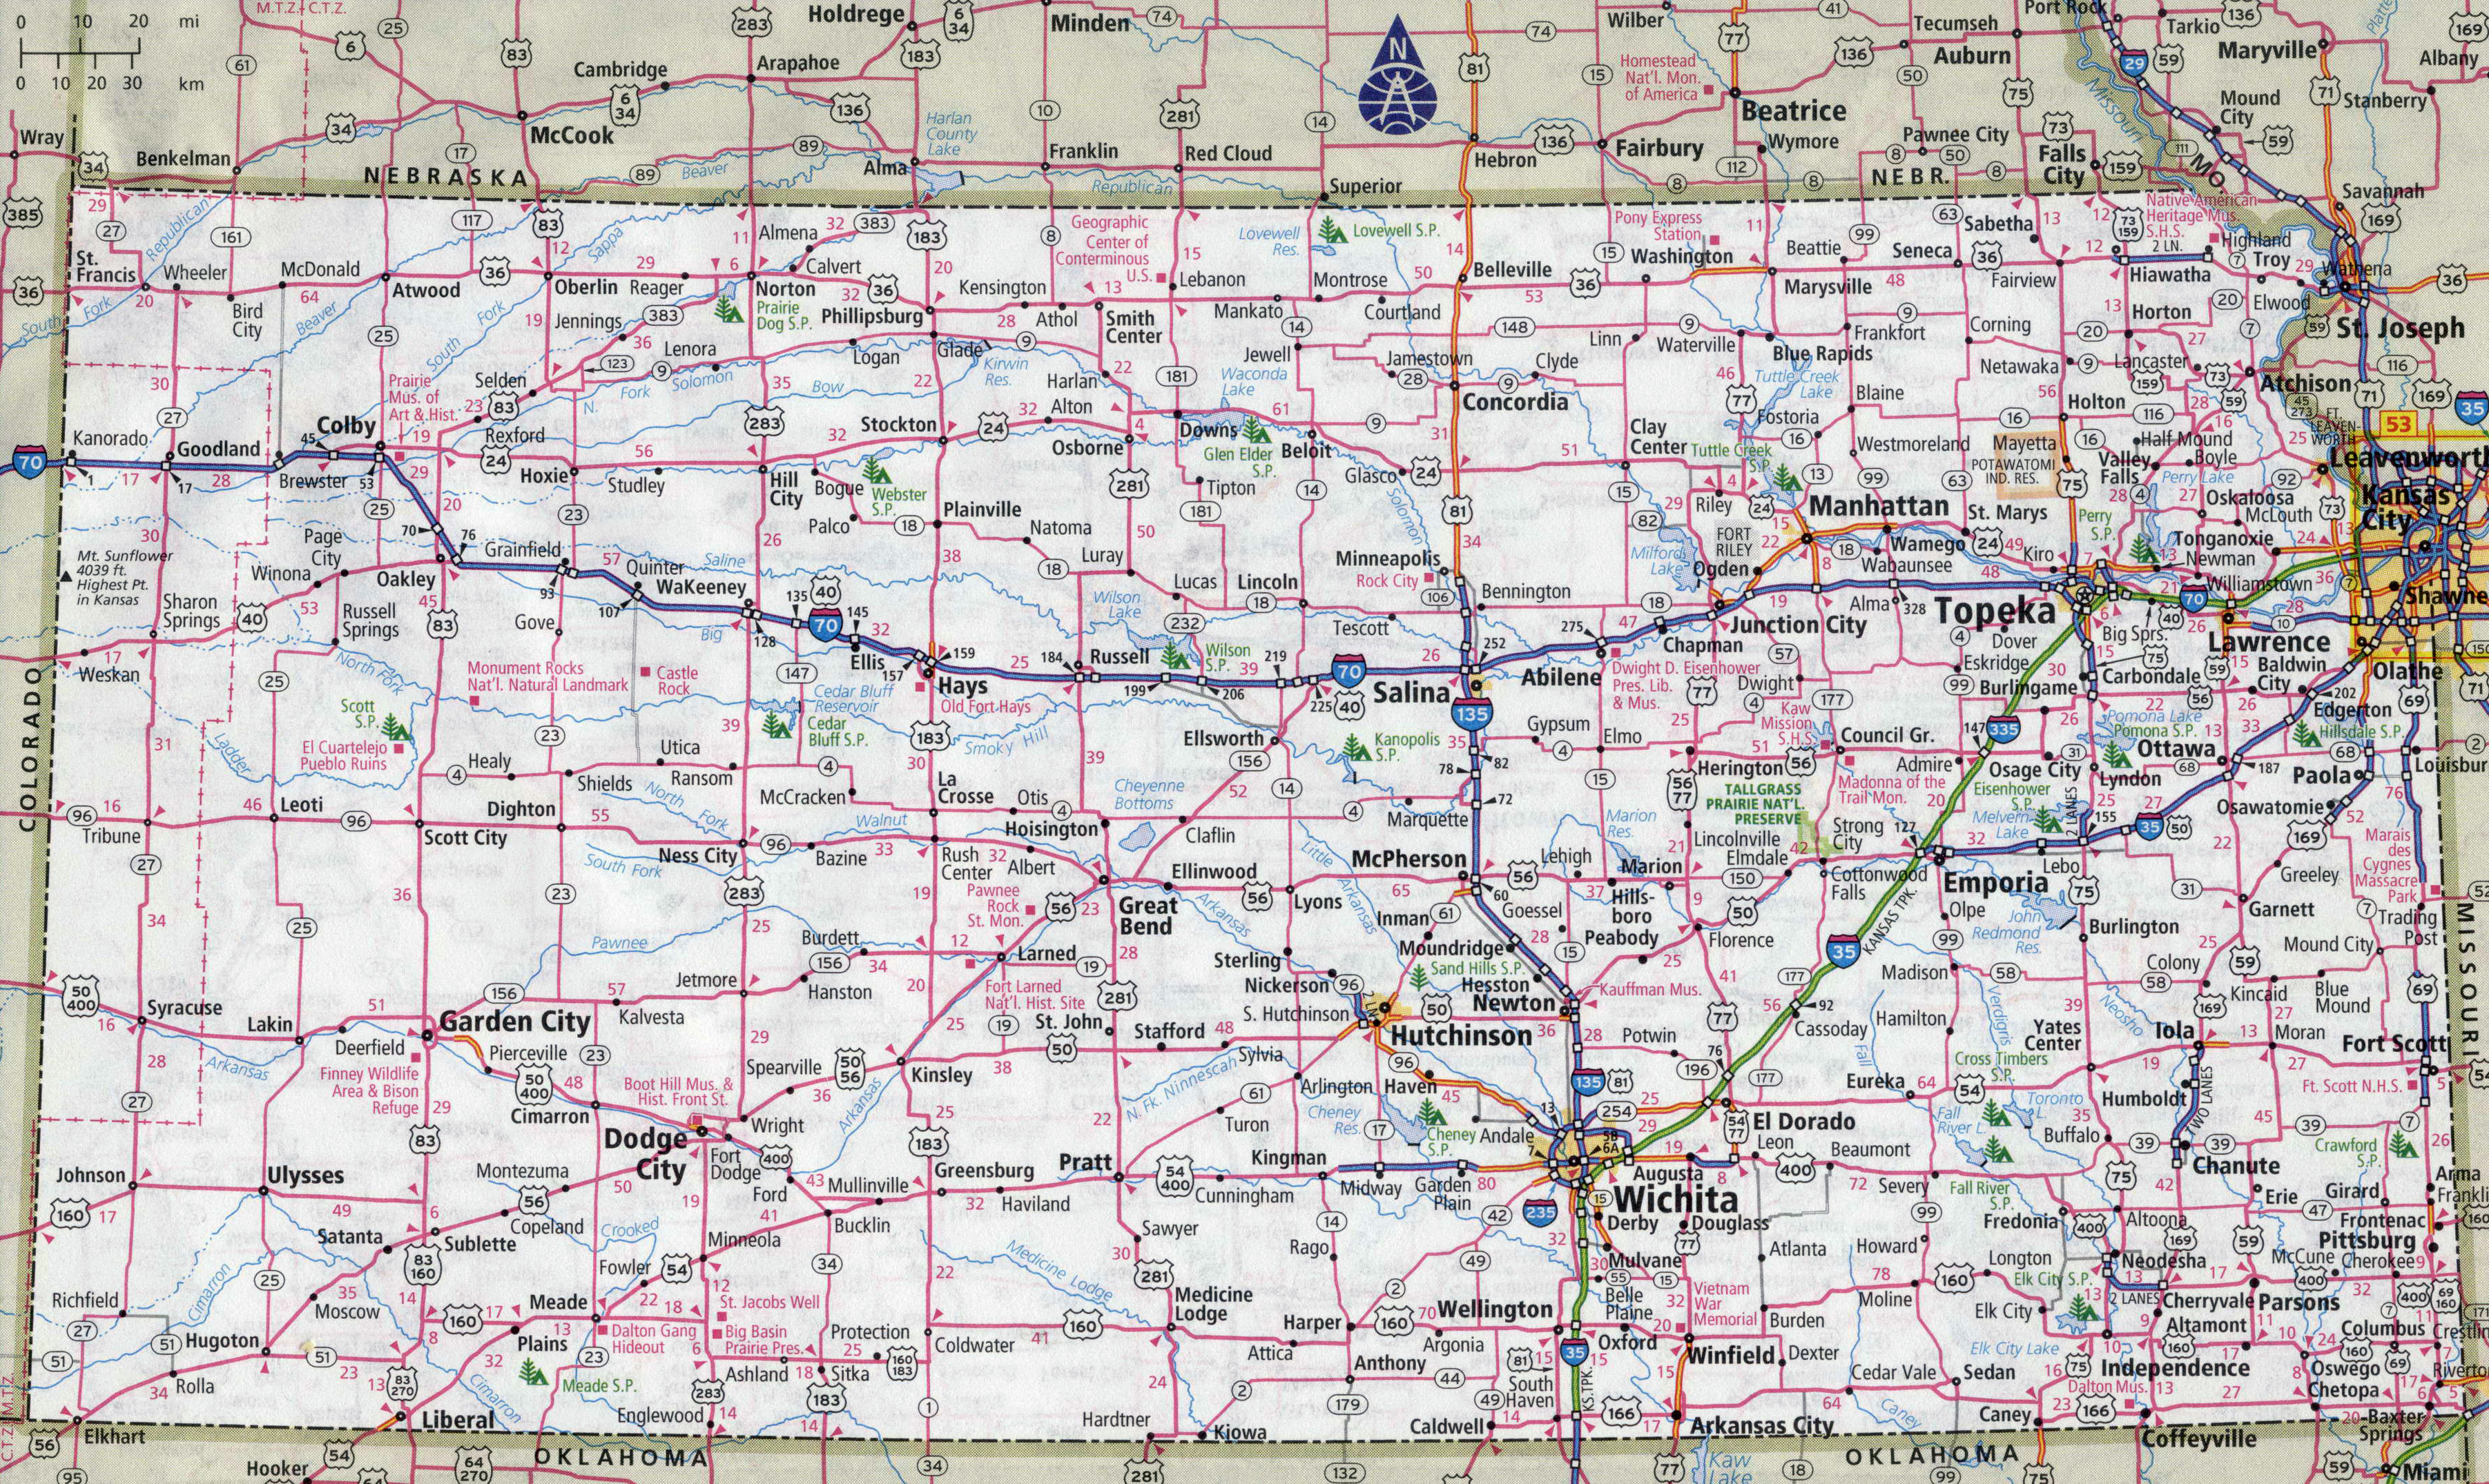 Large Detailed Roads And Highways Map Of Kansas State With Cities - Road map of kansas